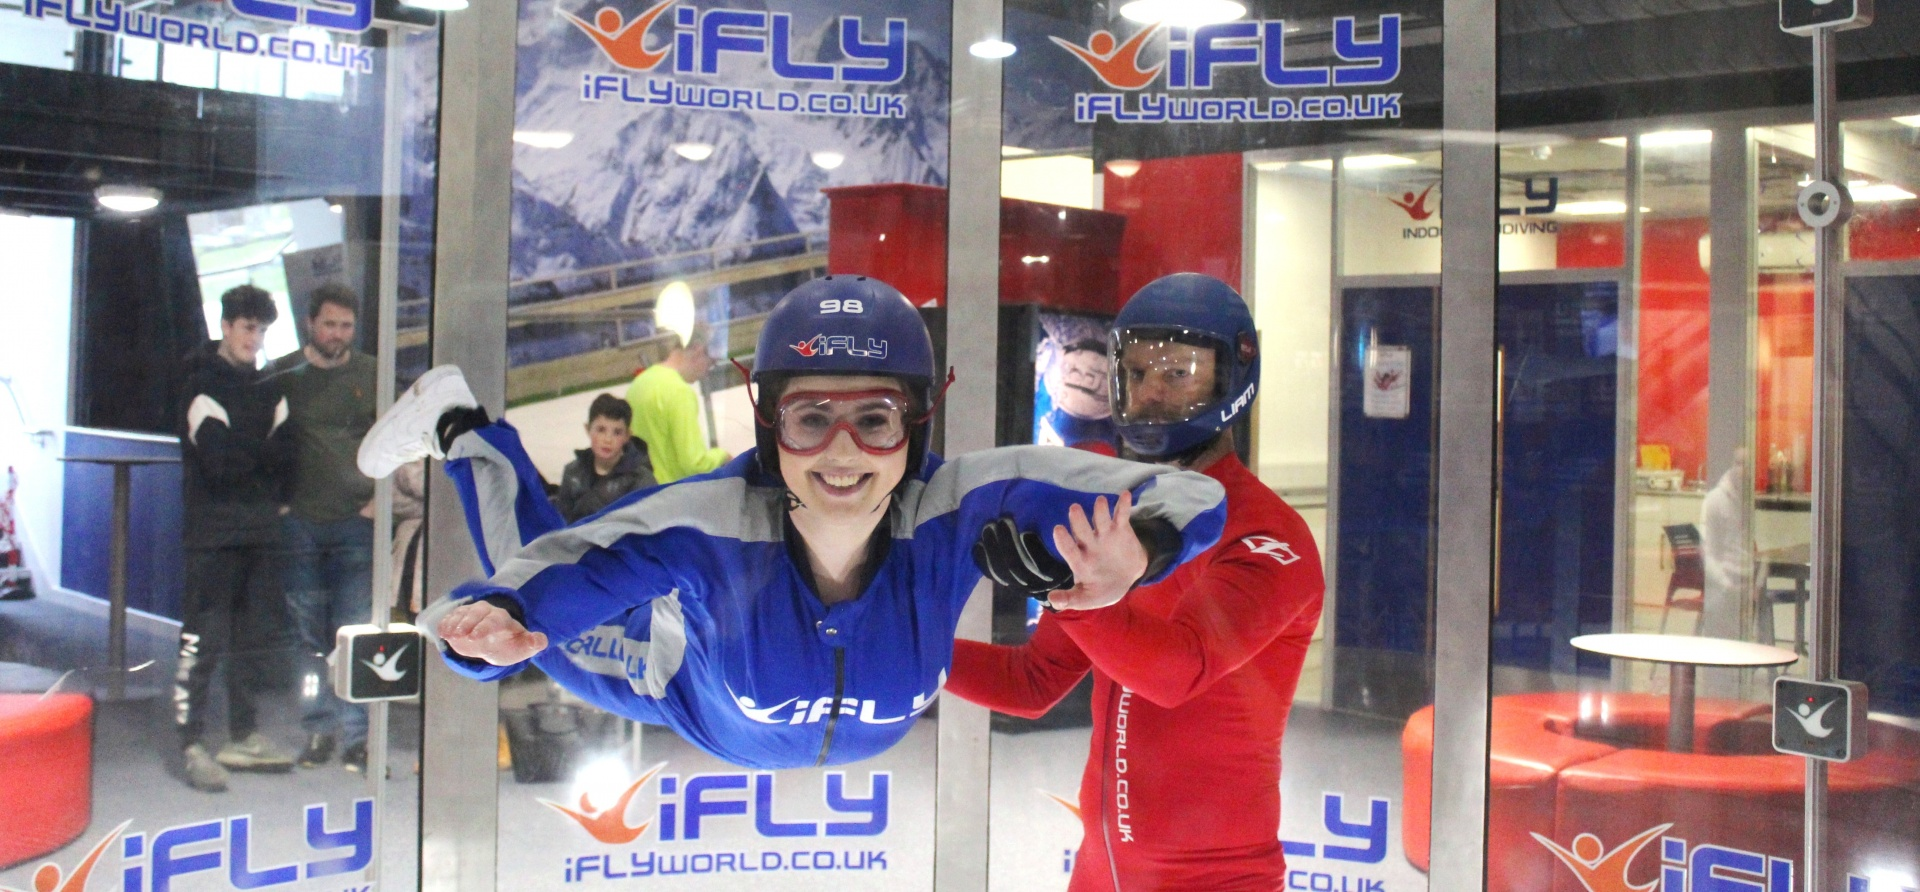 Indoor Skydiving Airborne-2